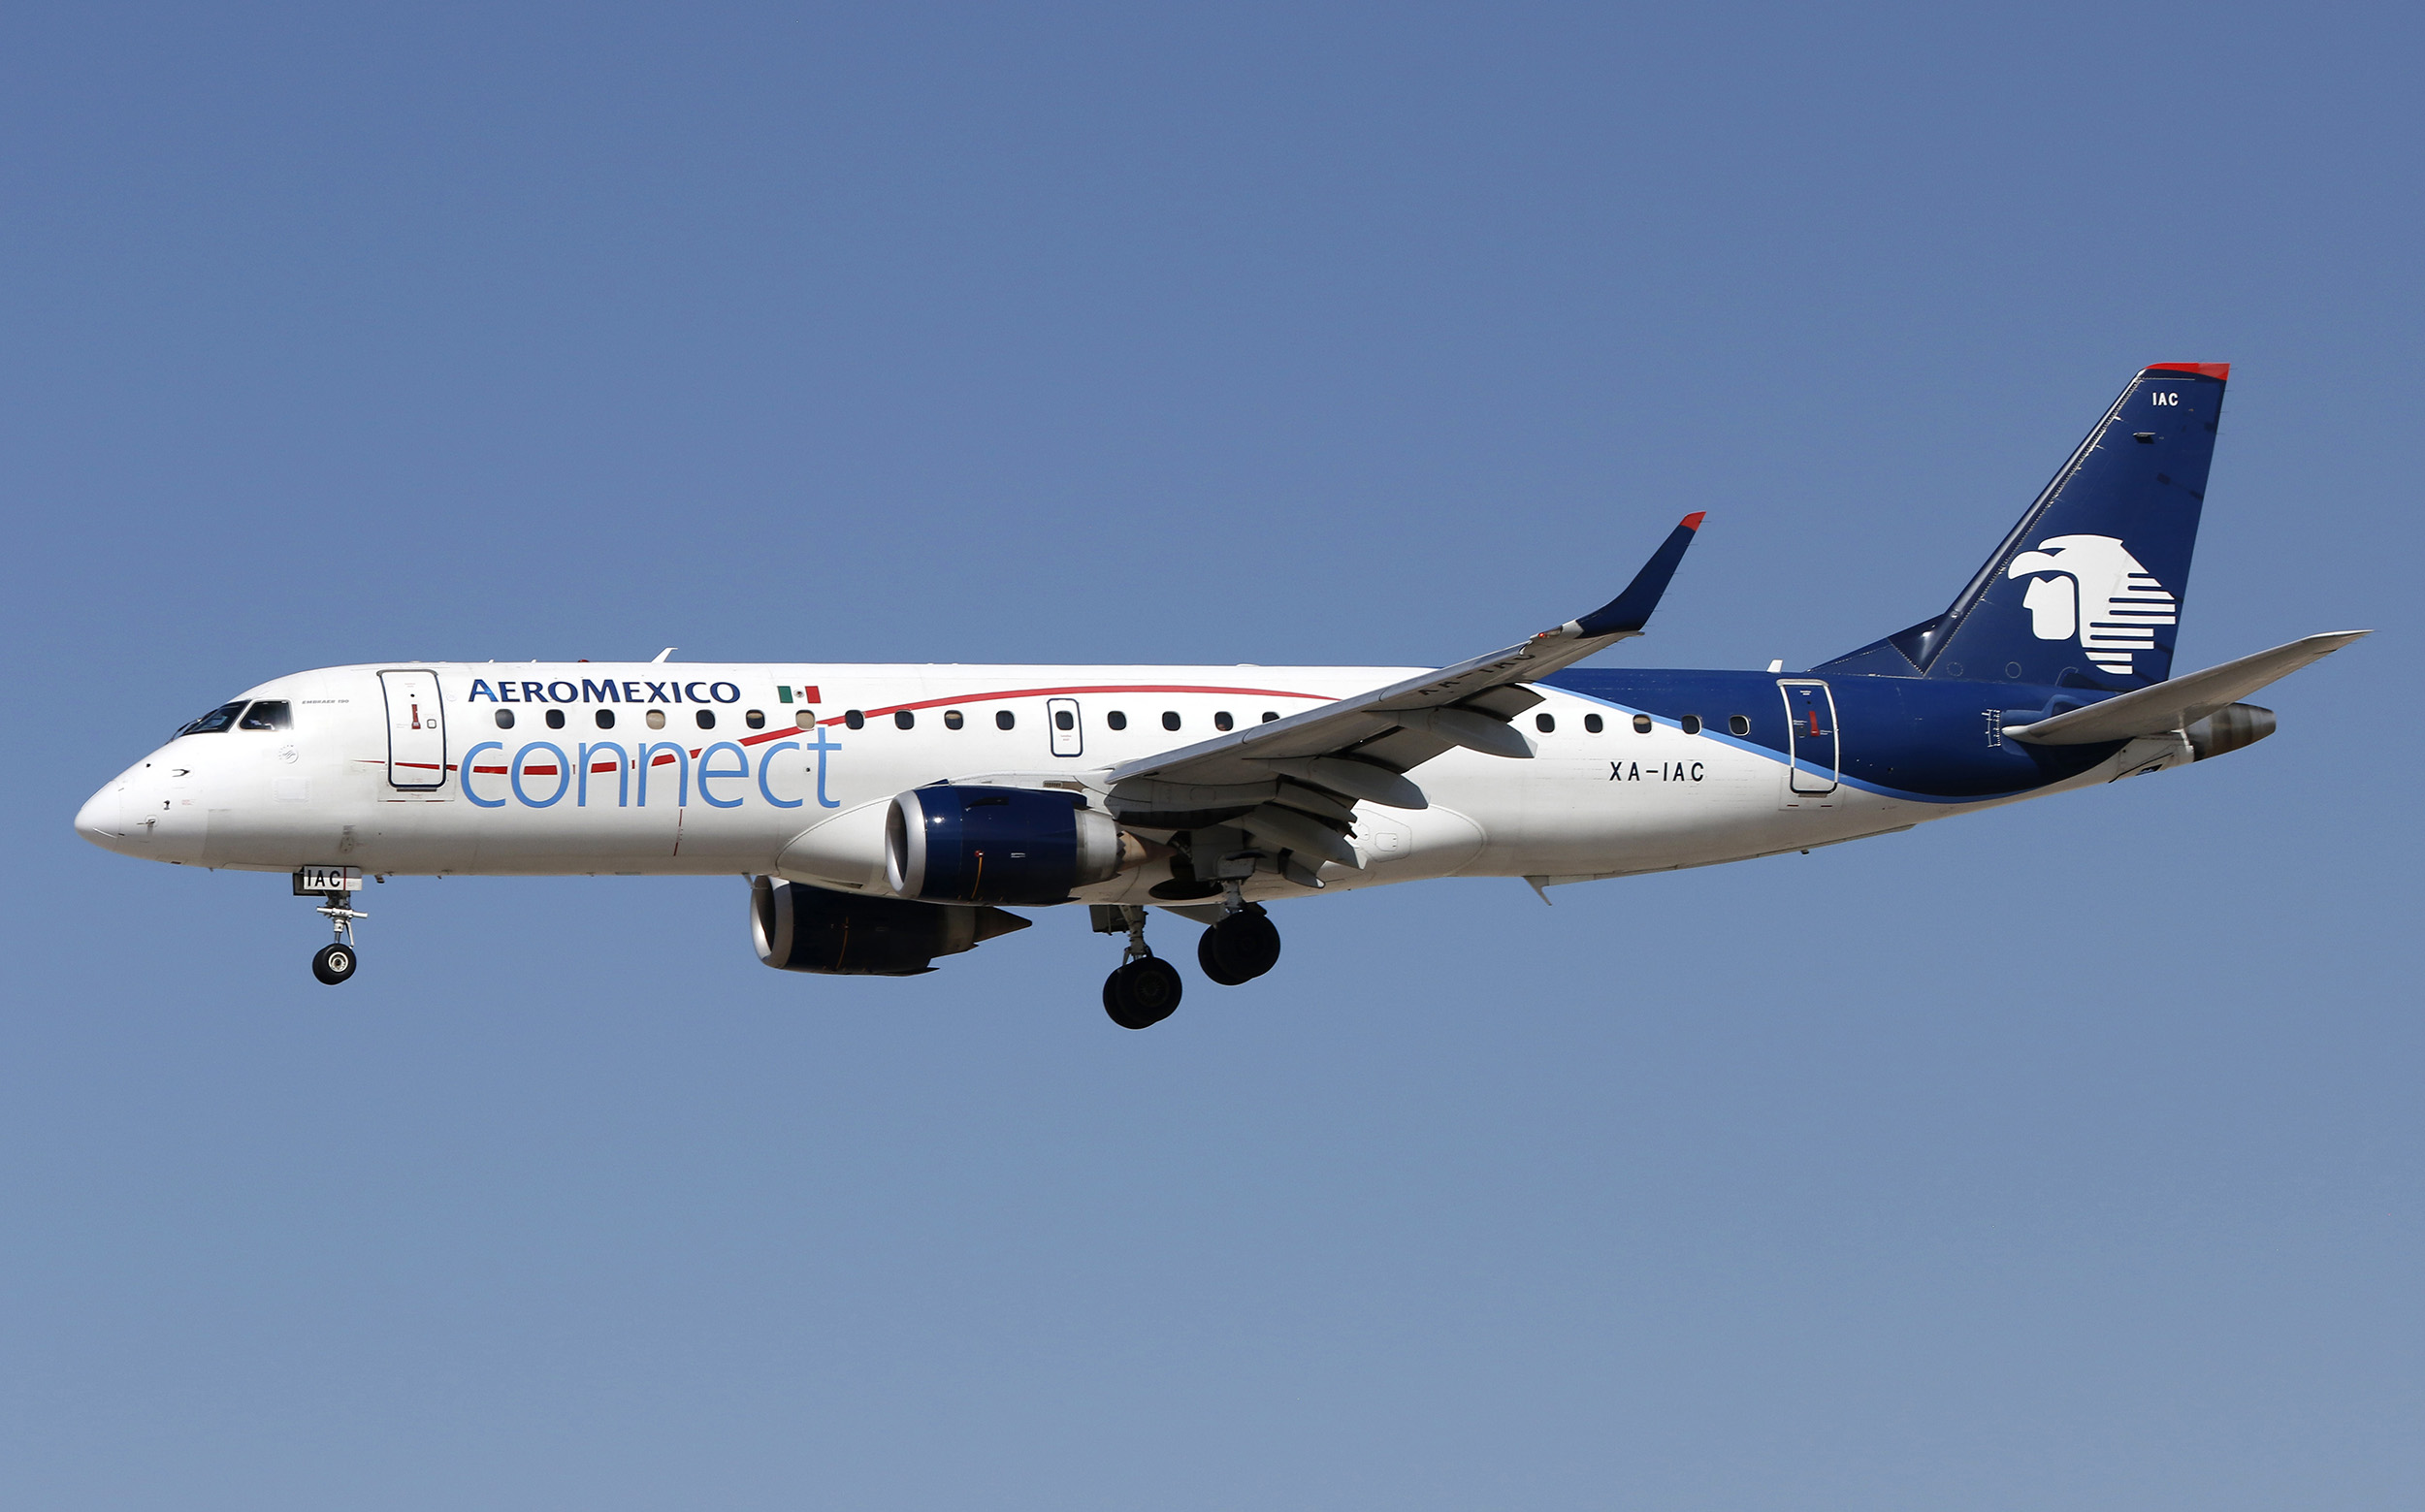 An Embraer 190 regional jetliner, belonging to AeroMexico Connect, lands at McCarran International Airport in Las Vegas, on Feb. 27.